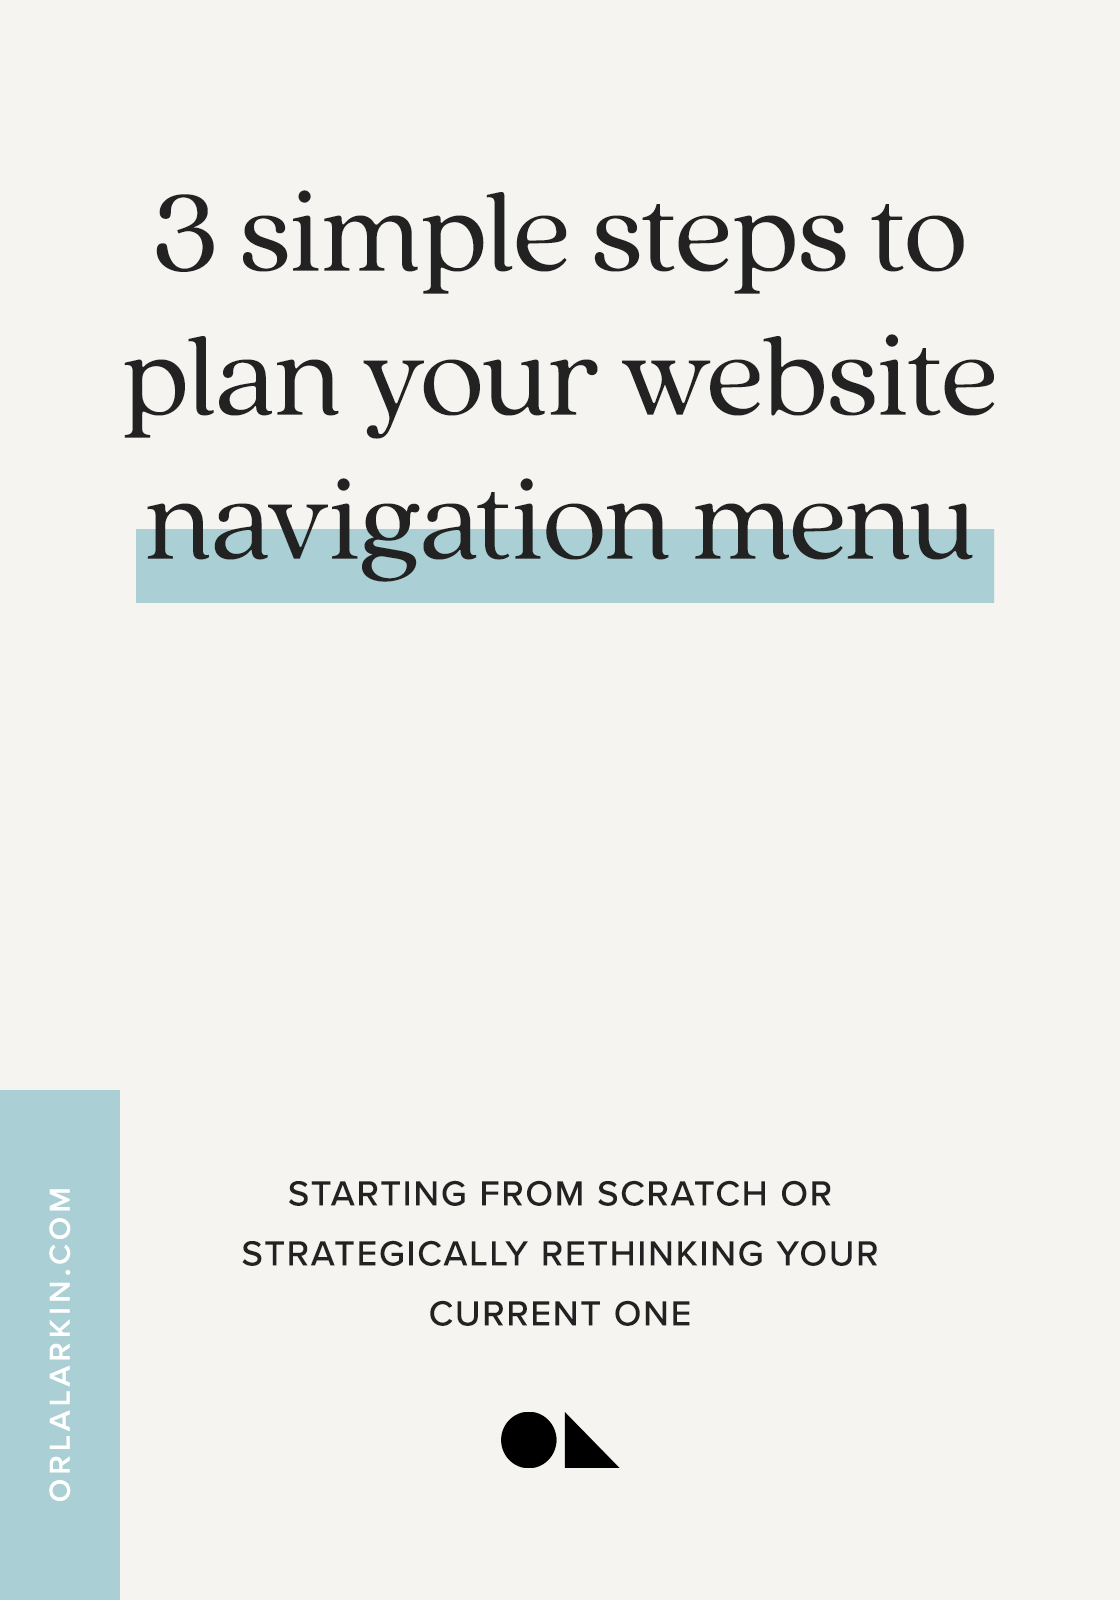 3 simple steps to plan your website navigation menu